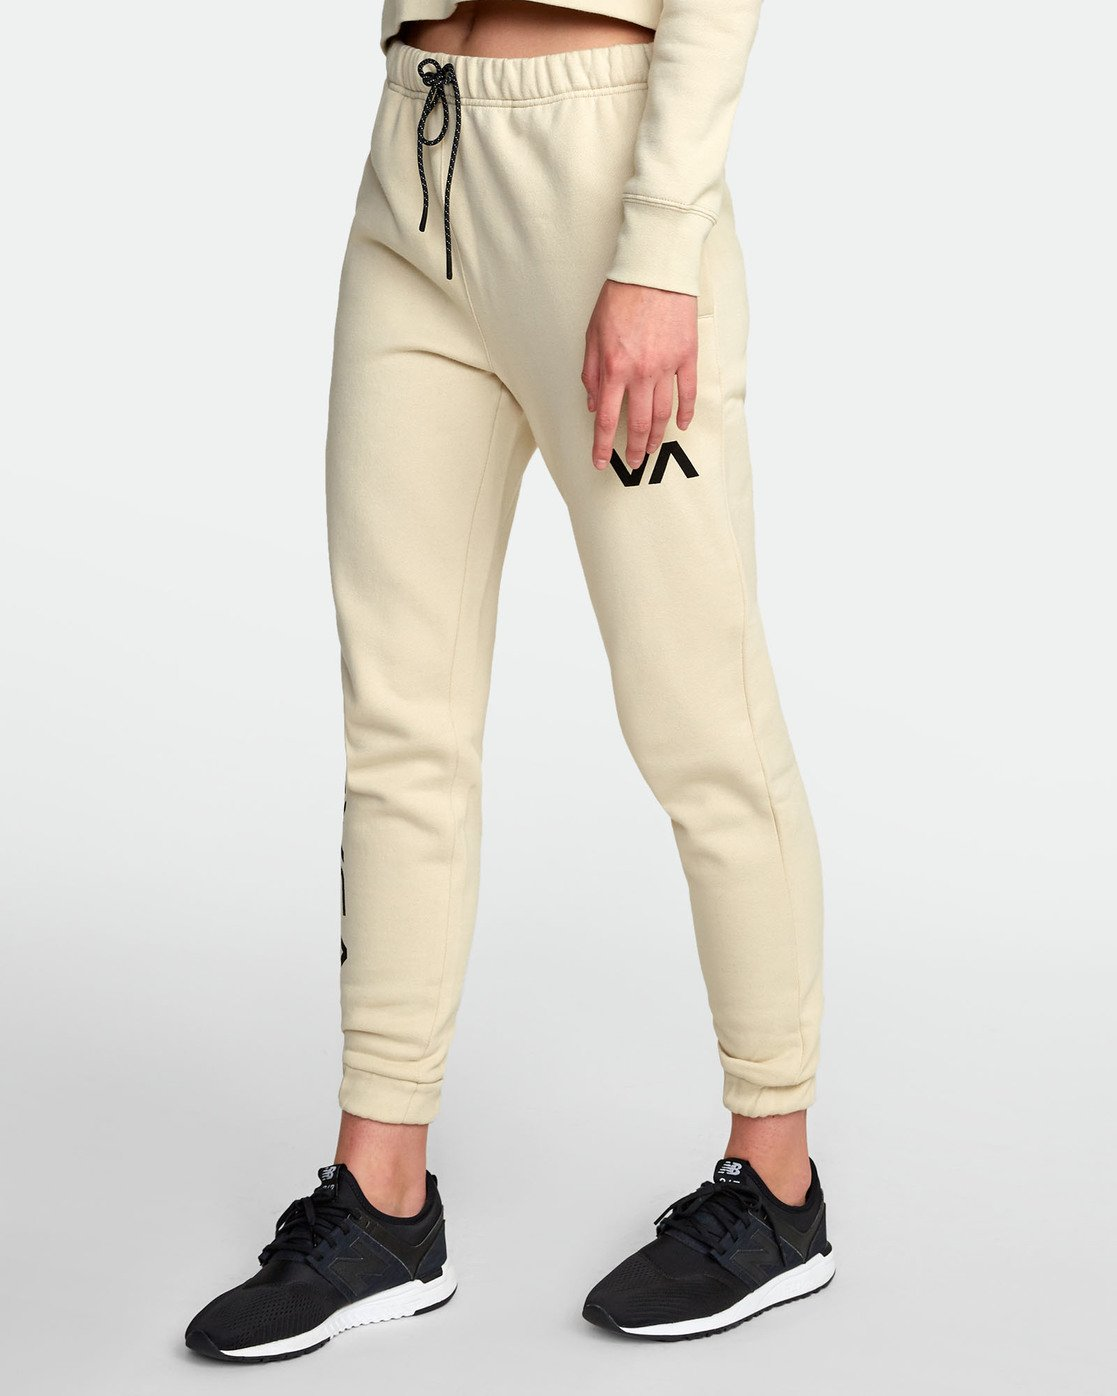 2 SPORT SWEATPANT Black T3071RSS RVCA